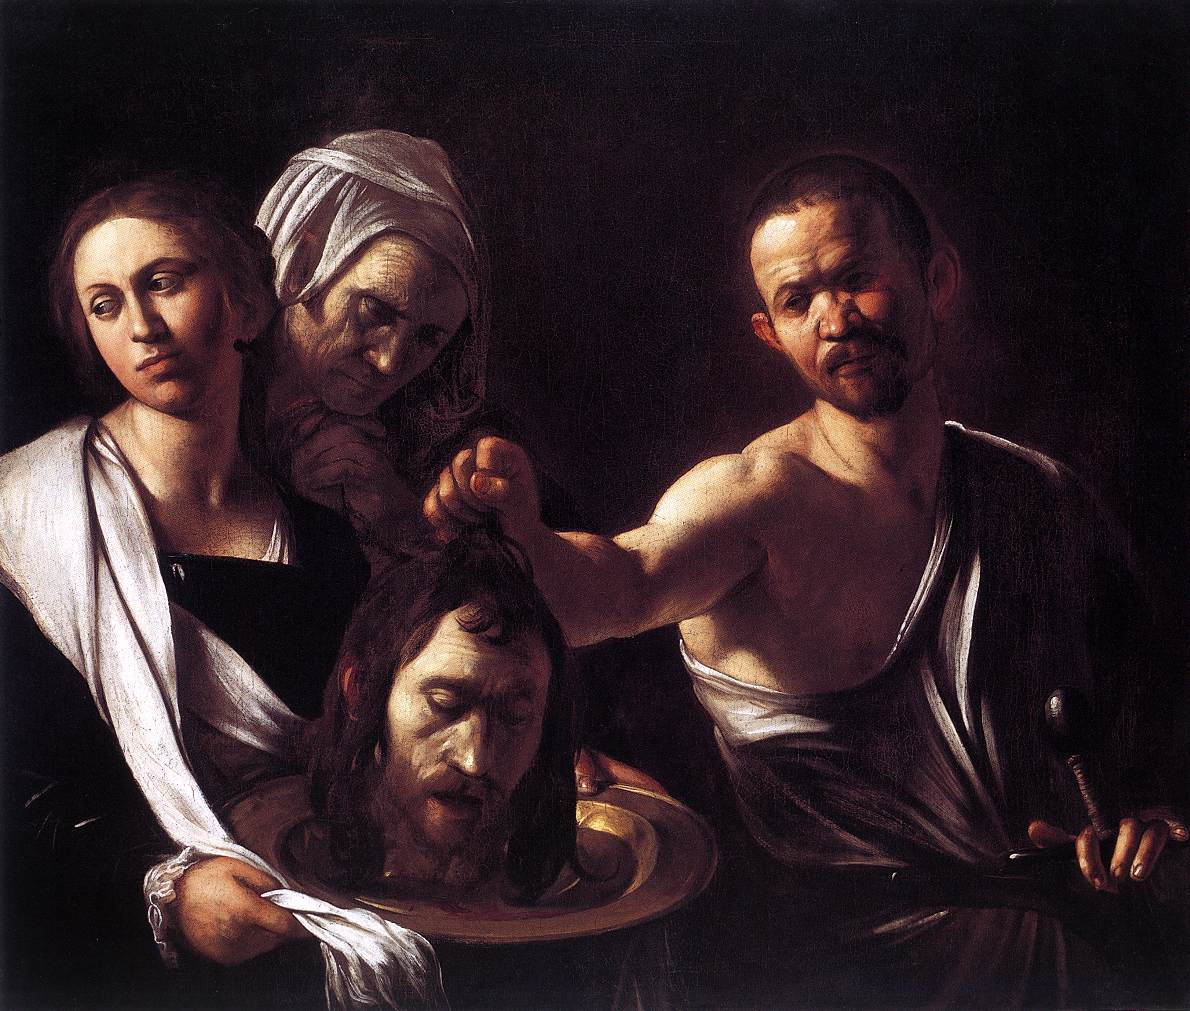 caravaggio david with the head of goliath essay